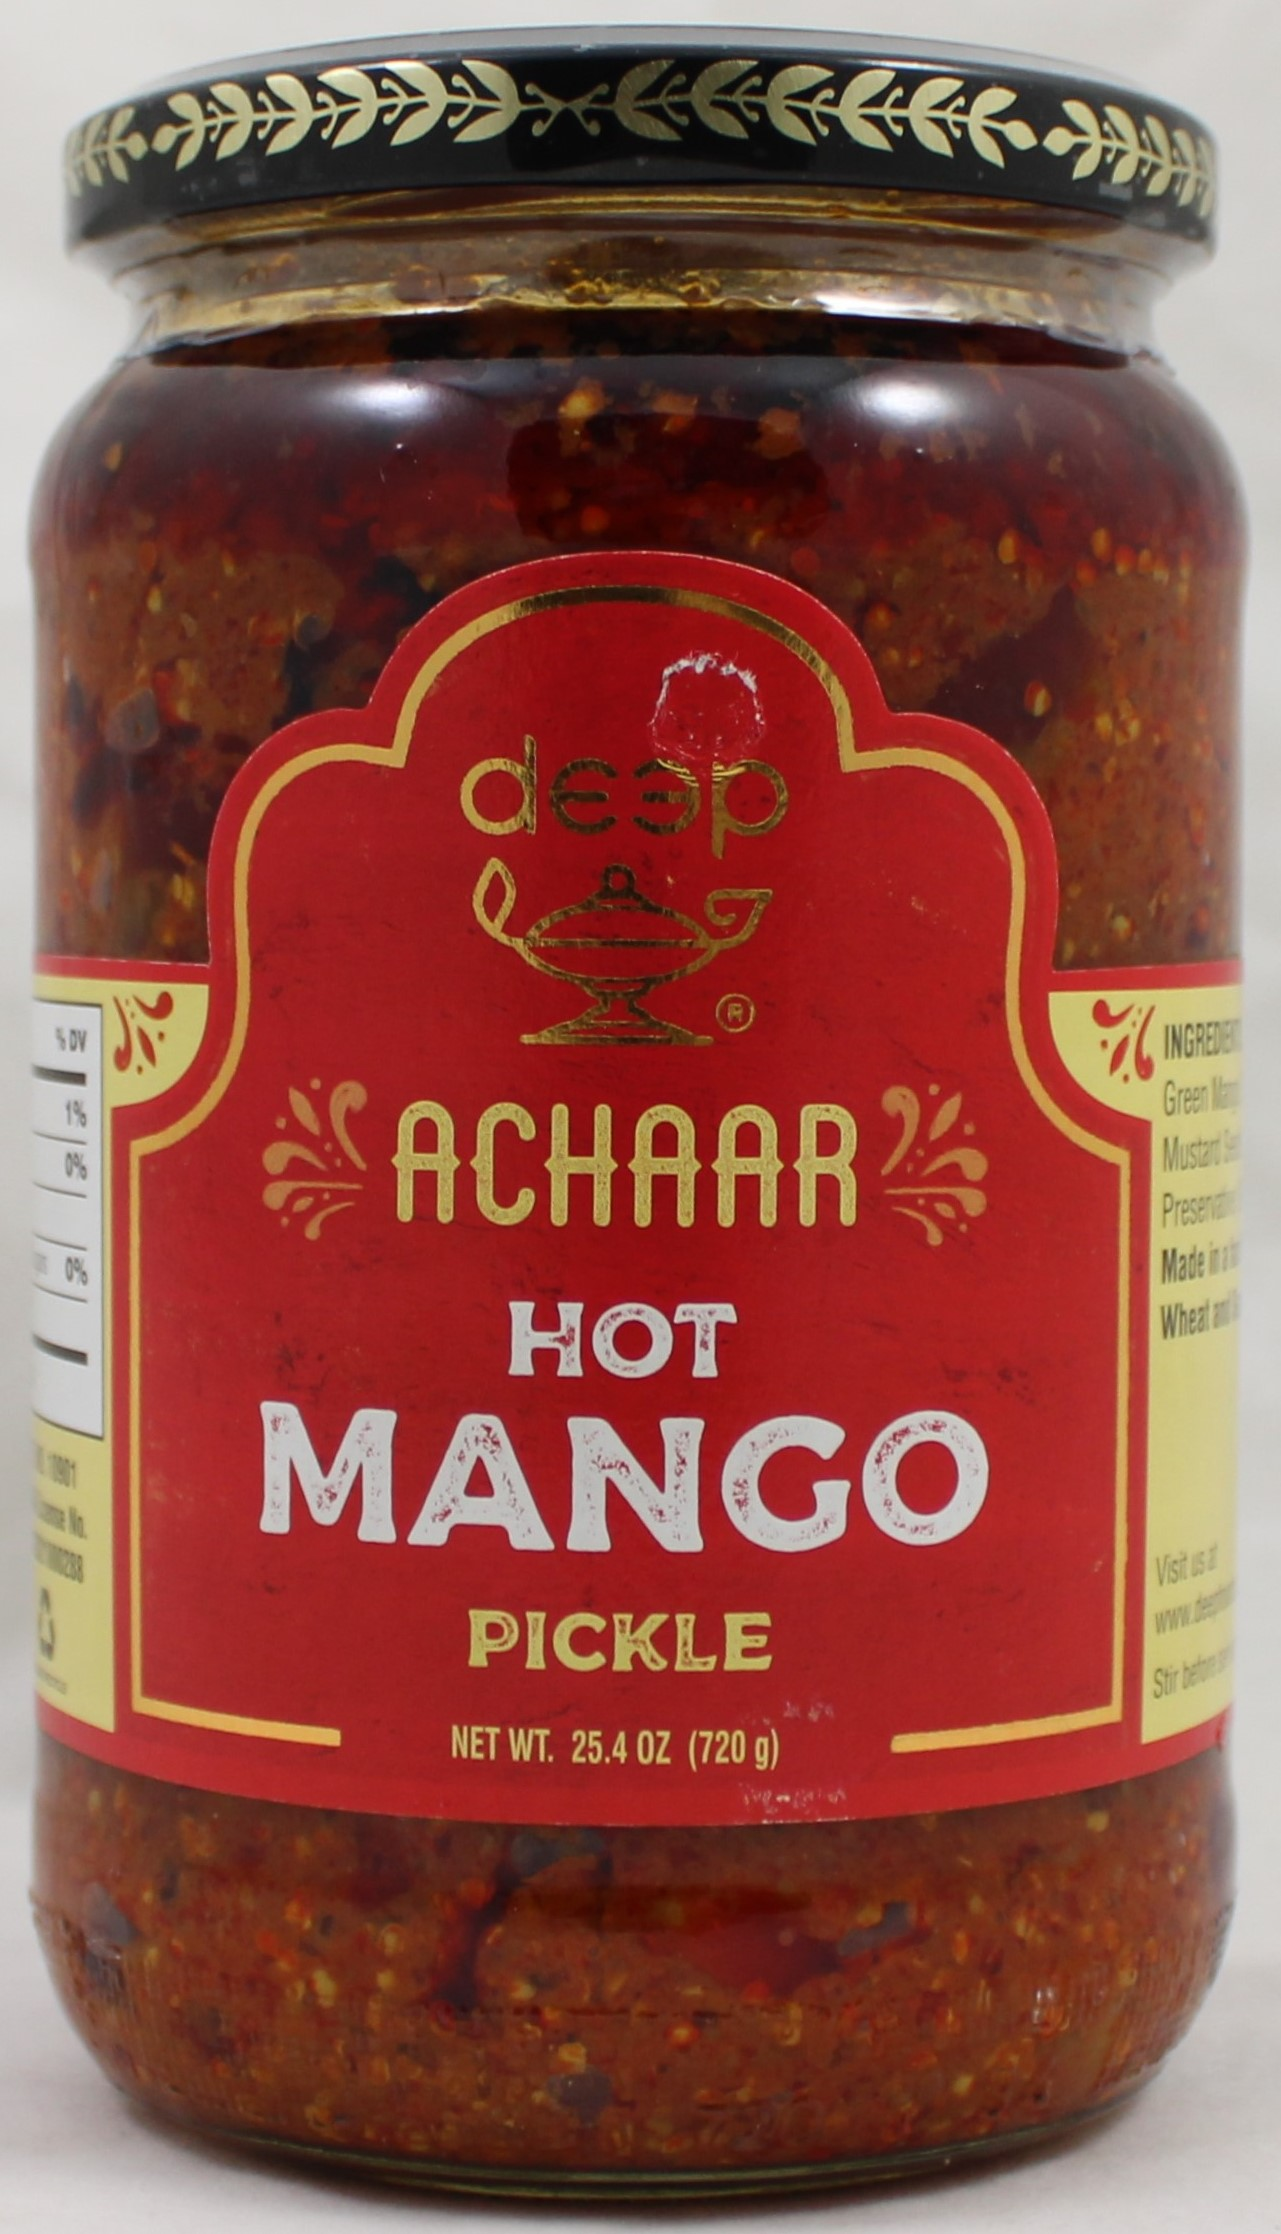 Hot Mango Pickle 26oz.